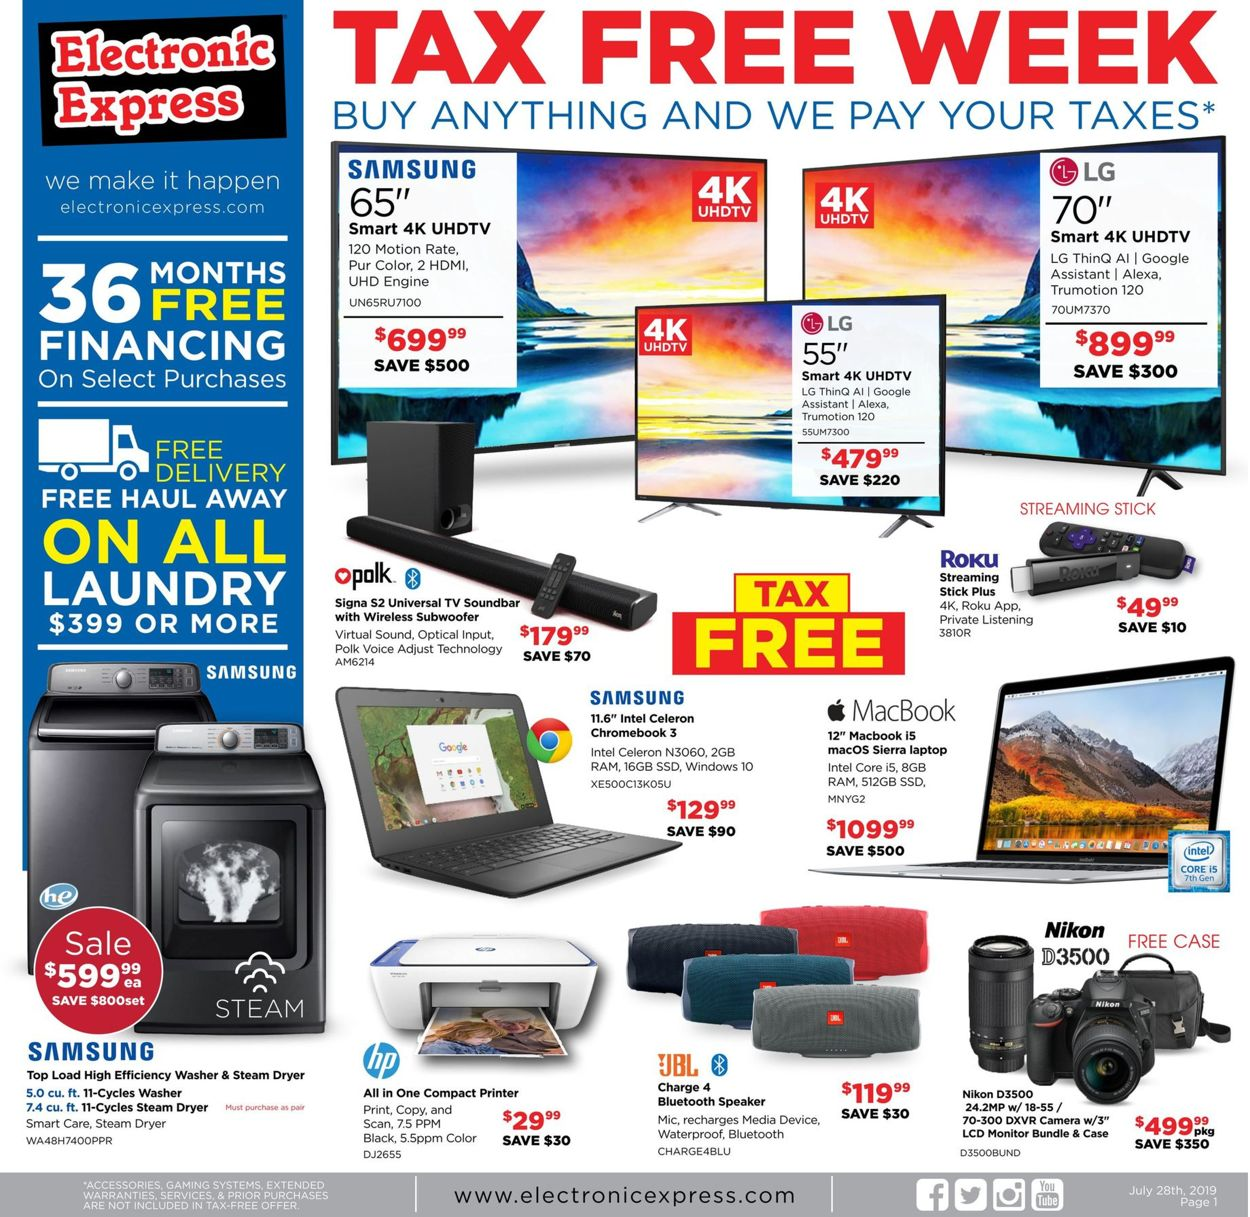 Electronic Express Current weekly ad 07\/28 - 08\/03\/2019 - frequent-ads.com